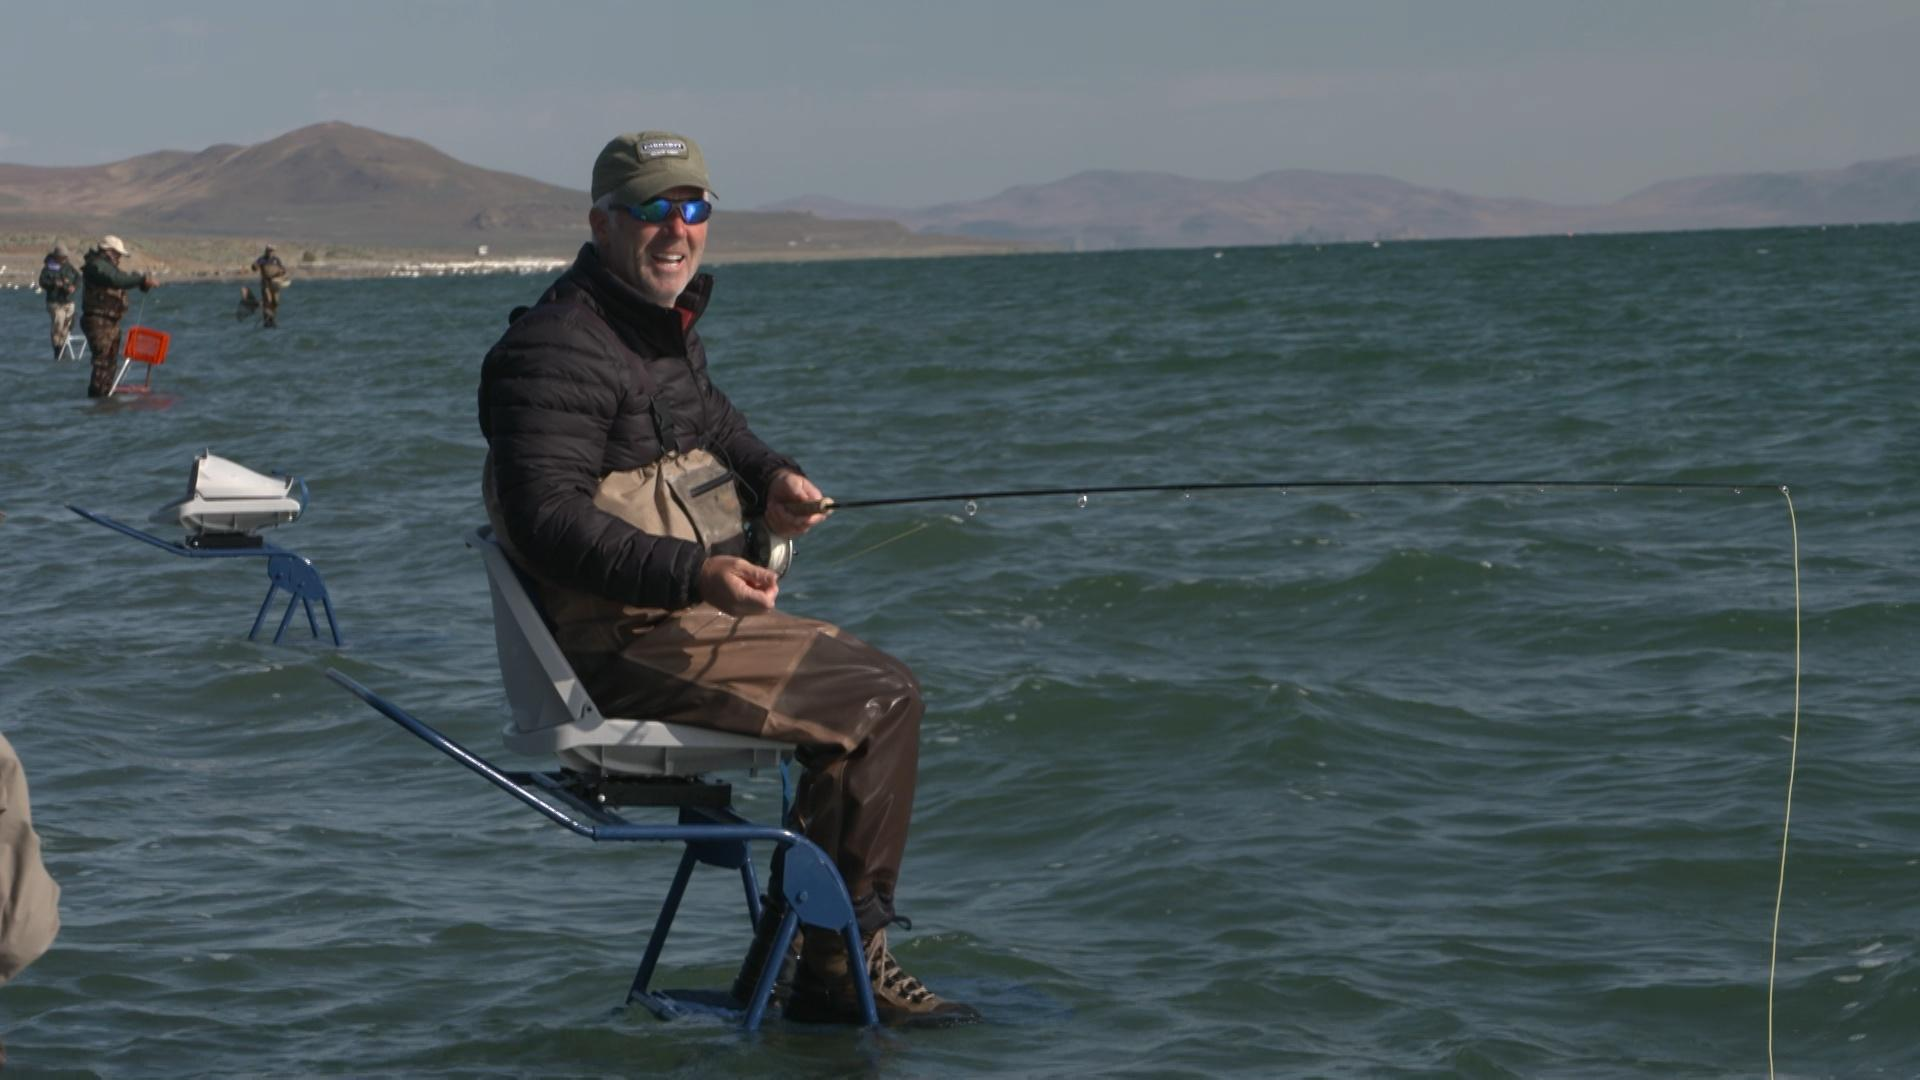 Video ladder fly fishing at pyramid lake watch outdoor for Pyramid lake fishing report